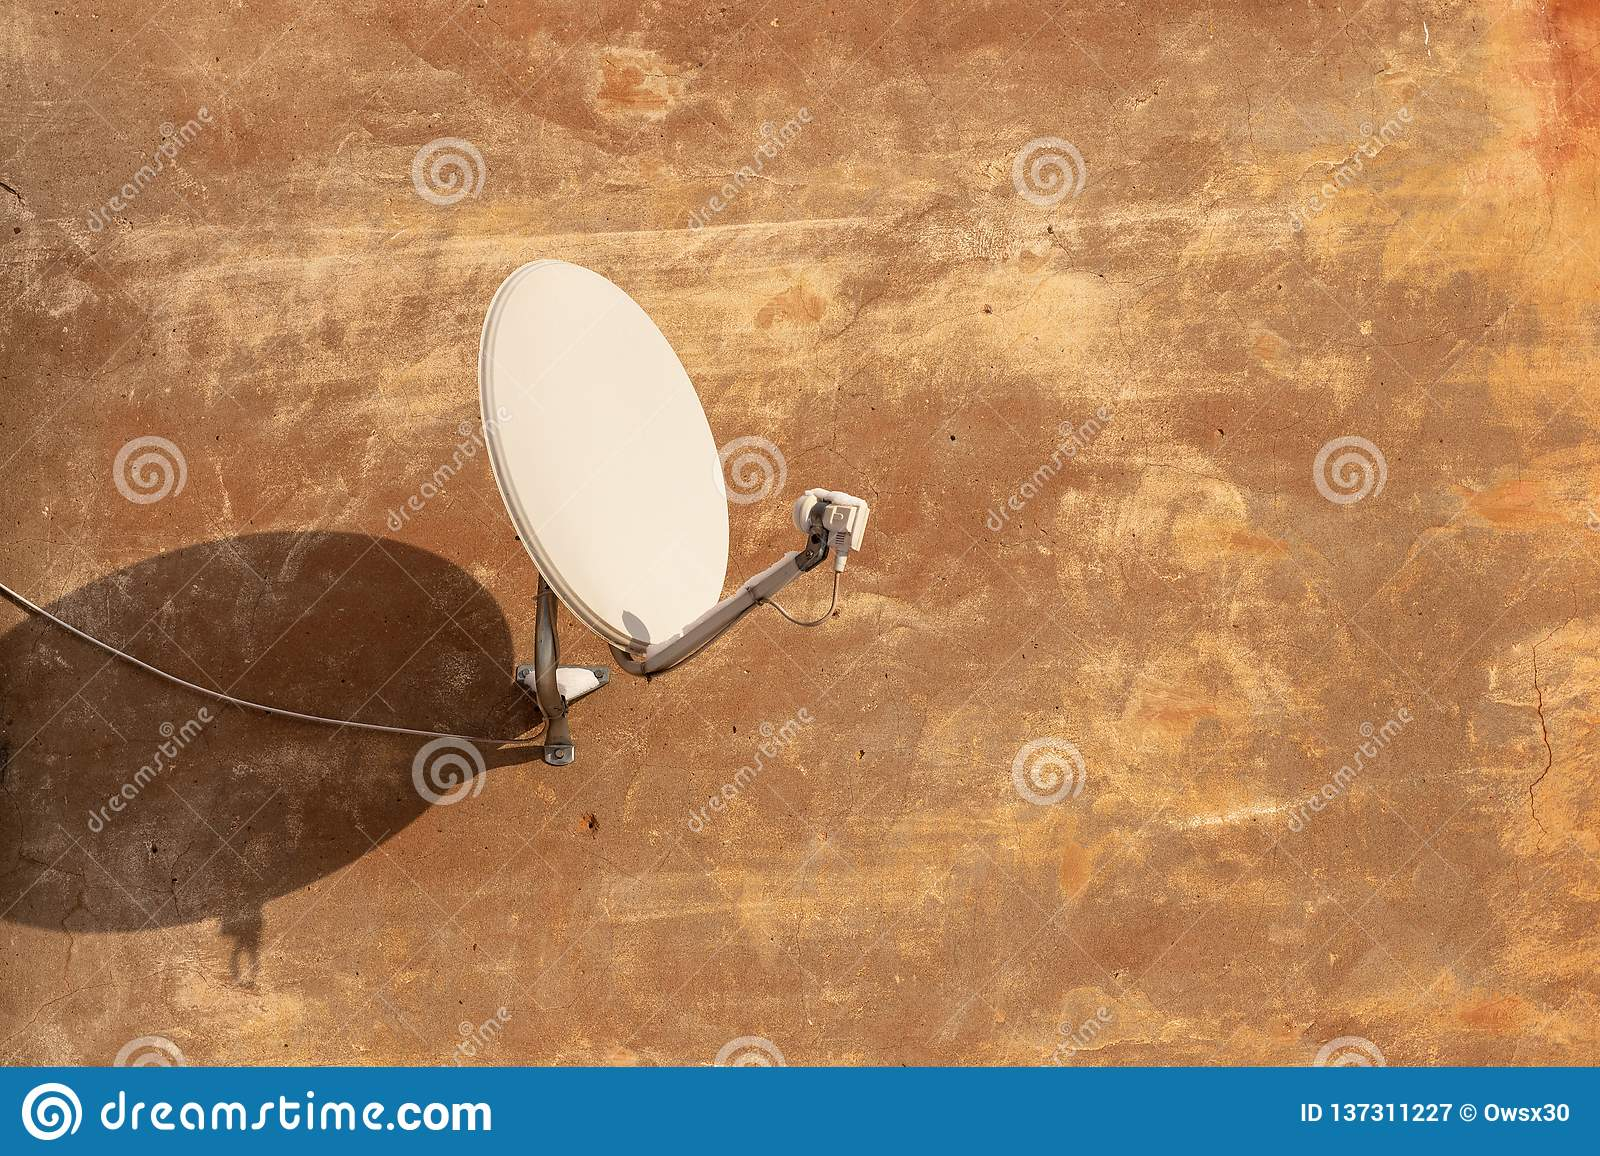 Satellite antenna for receiving digital TV signal on plastered wall